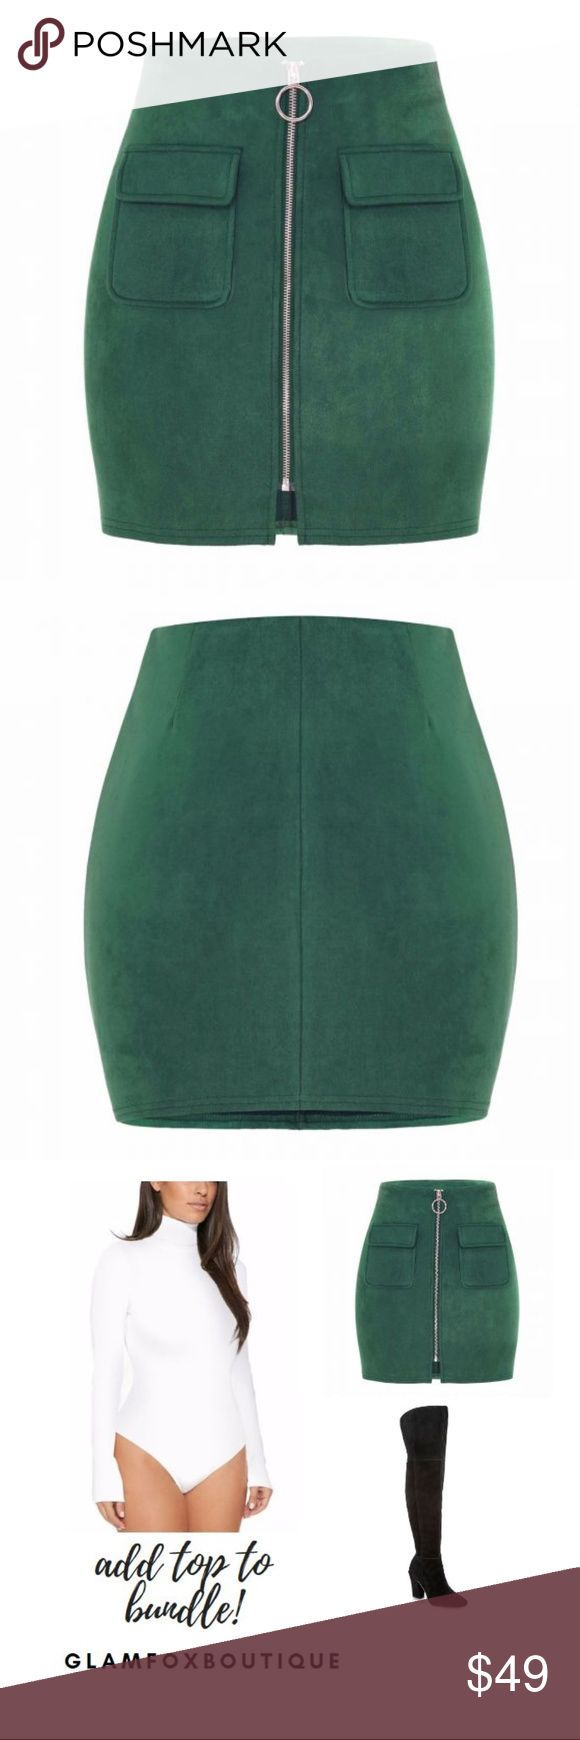 Suede Emerald Green Color Skirt FALL SEXY Suede High Waist Solid Color Skirt -SEXY NEW FALL  You'll never want to get outta this piece!!   This high waisted mini skirt features a faux suede material with a form fitting and breathable stretch to flatter your figure effortlessly!    Hits at your upper stems.  Pair this with the bodysuit pictured above from my closet bundle to save W/ knee high boots and own the city!   Add the top from my closet and bundle to save! Skirts